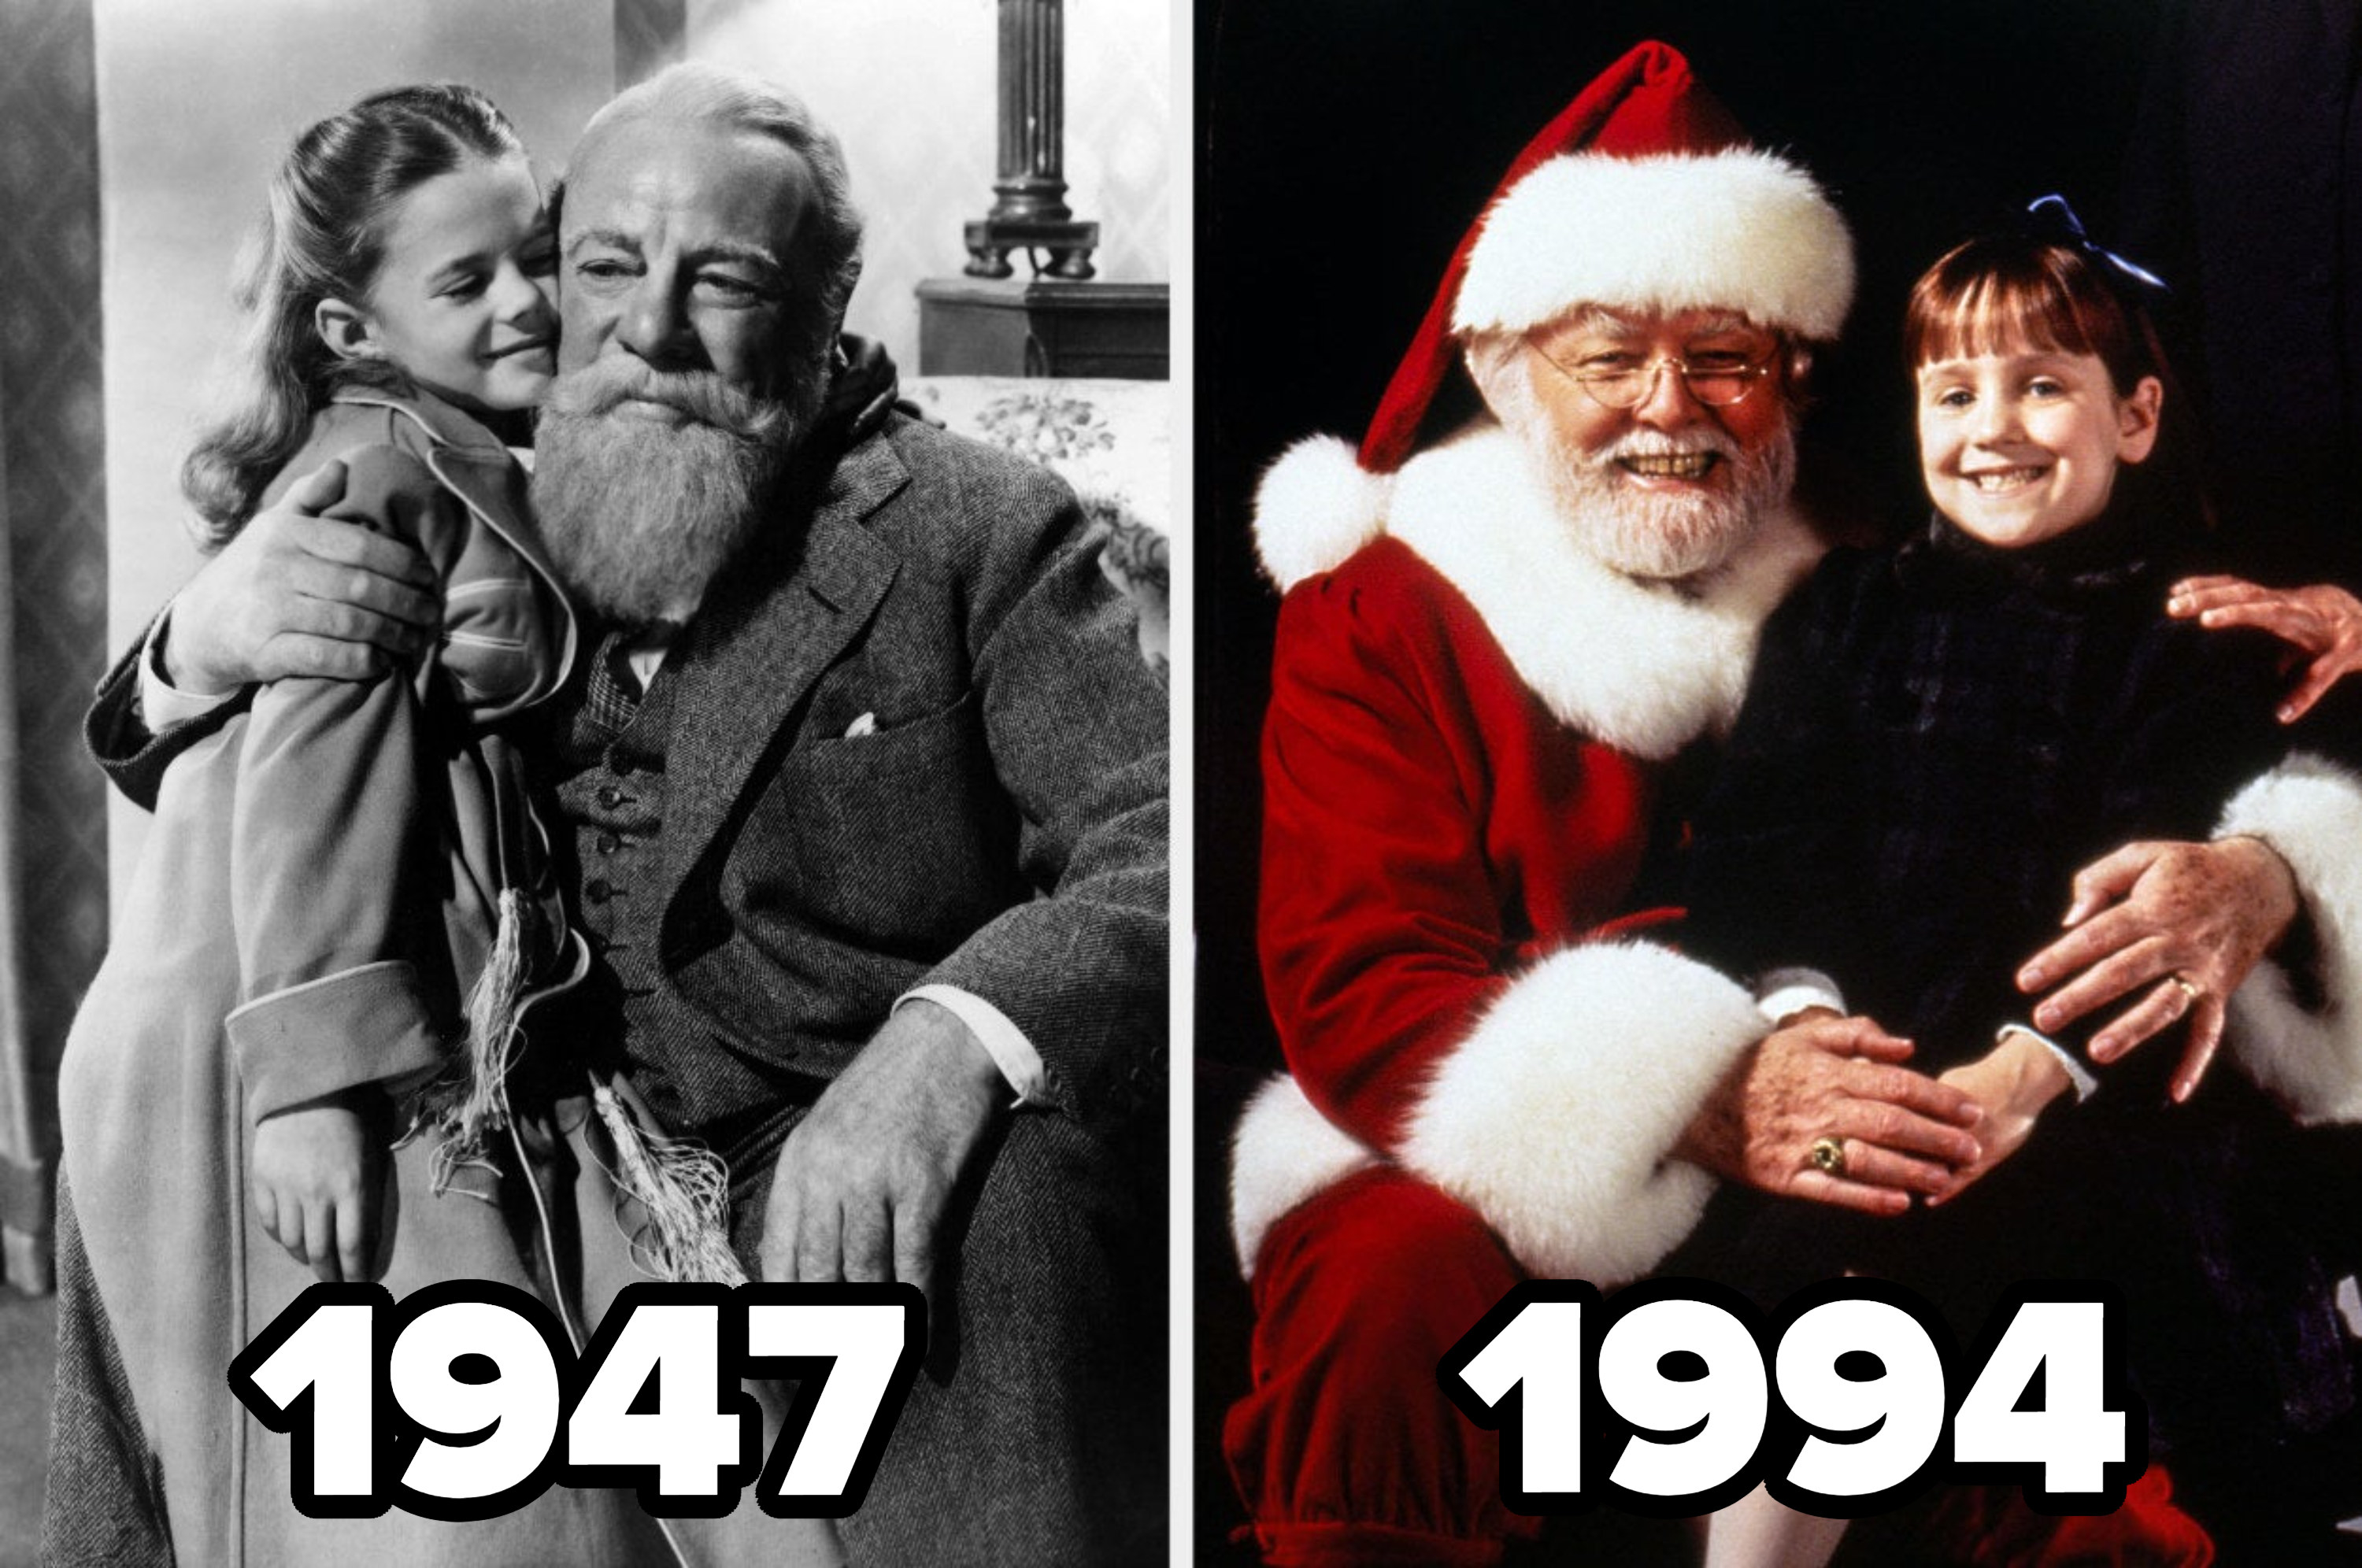 """Susan Walker with Santa in the 1947 """"Miracle on 34th Street"""" next to her with Santa in the 1994 remake"""